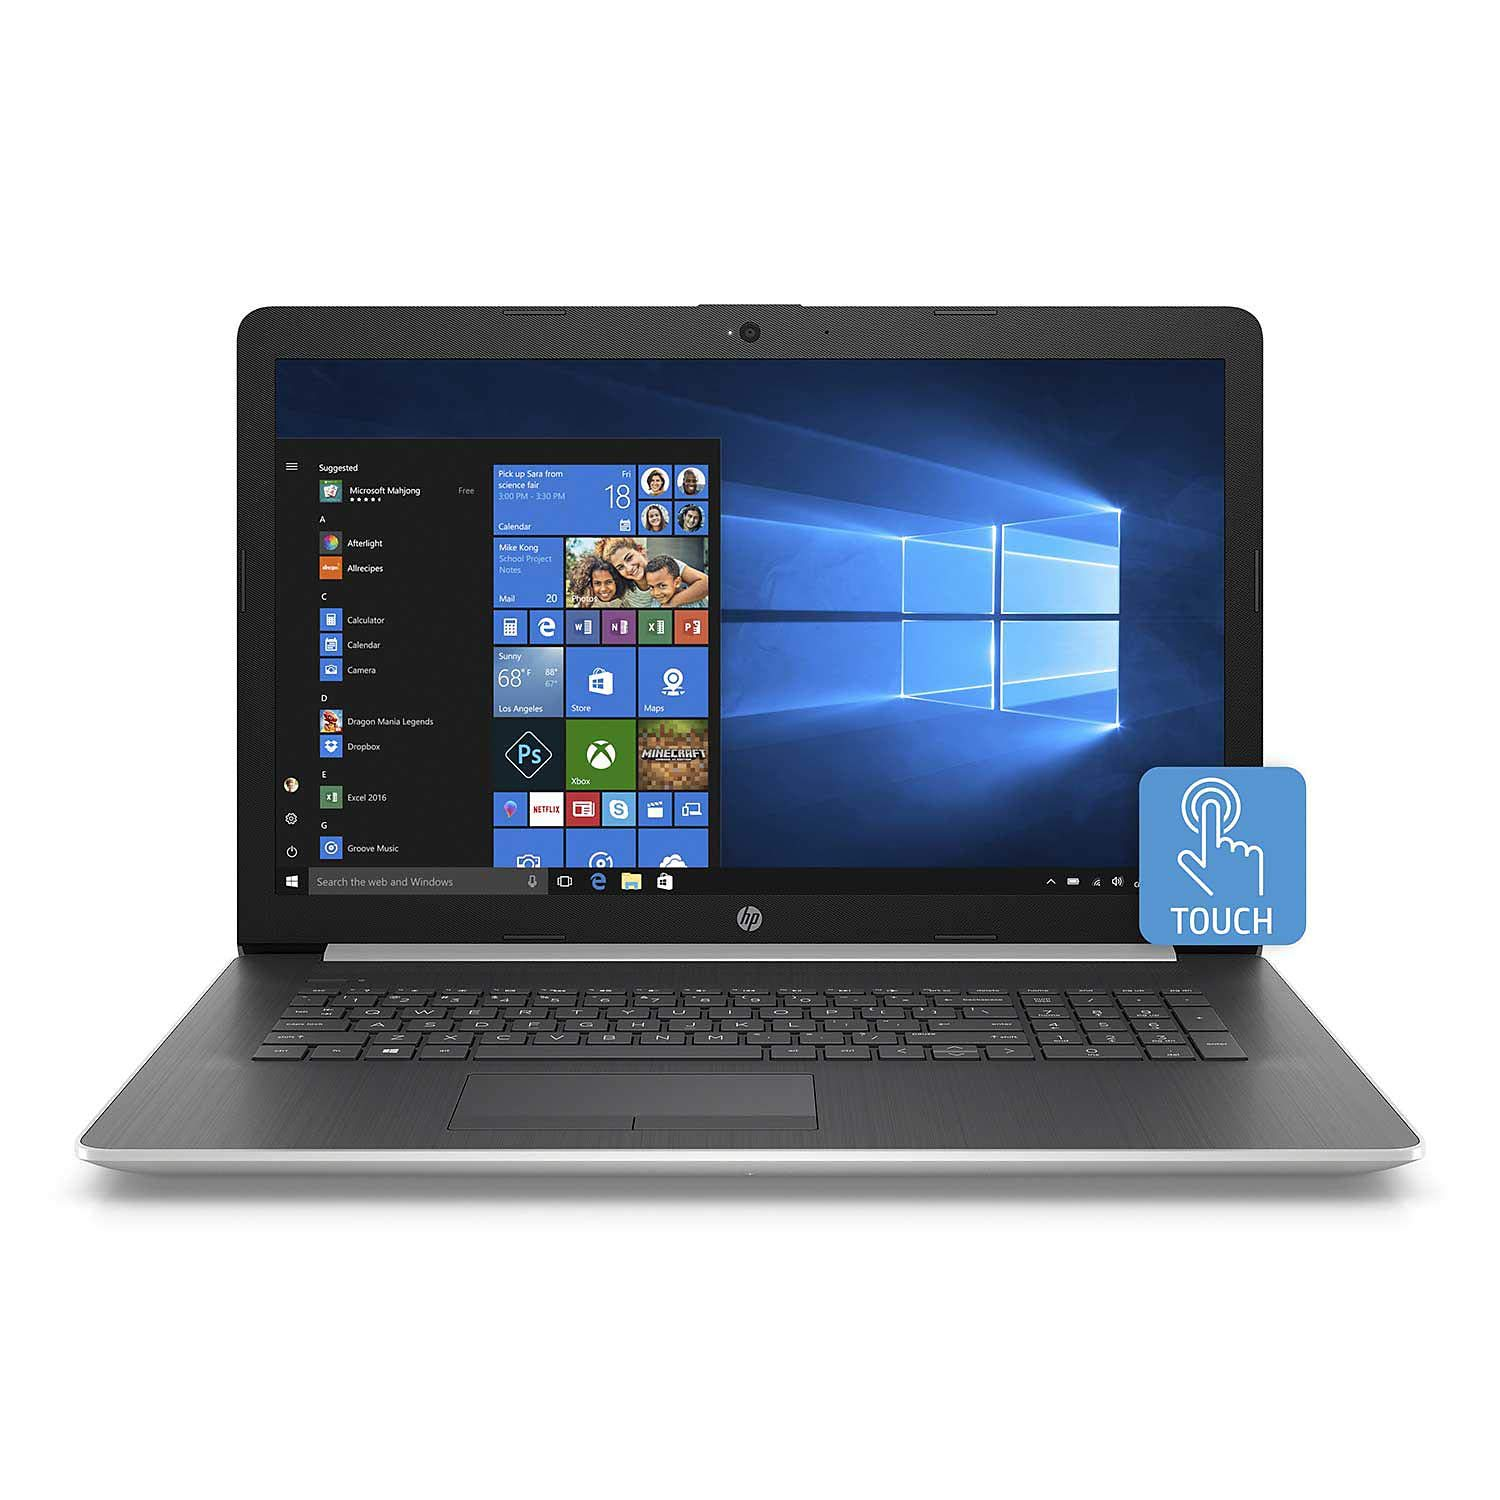 laptop under 1000 dollars